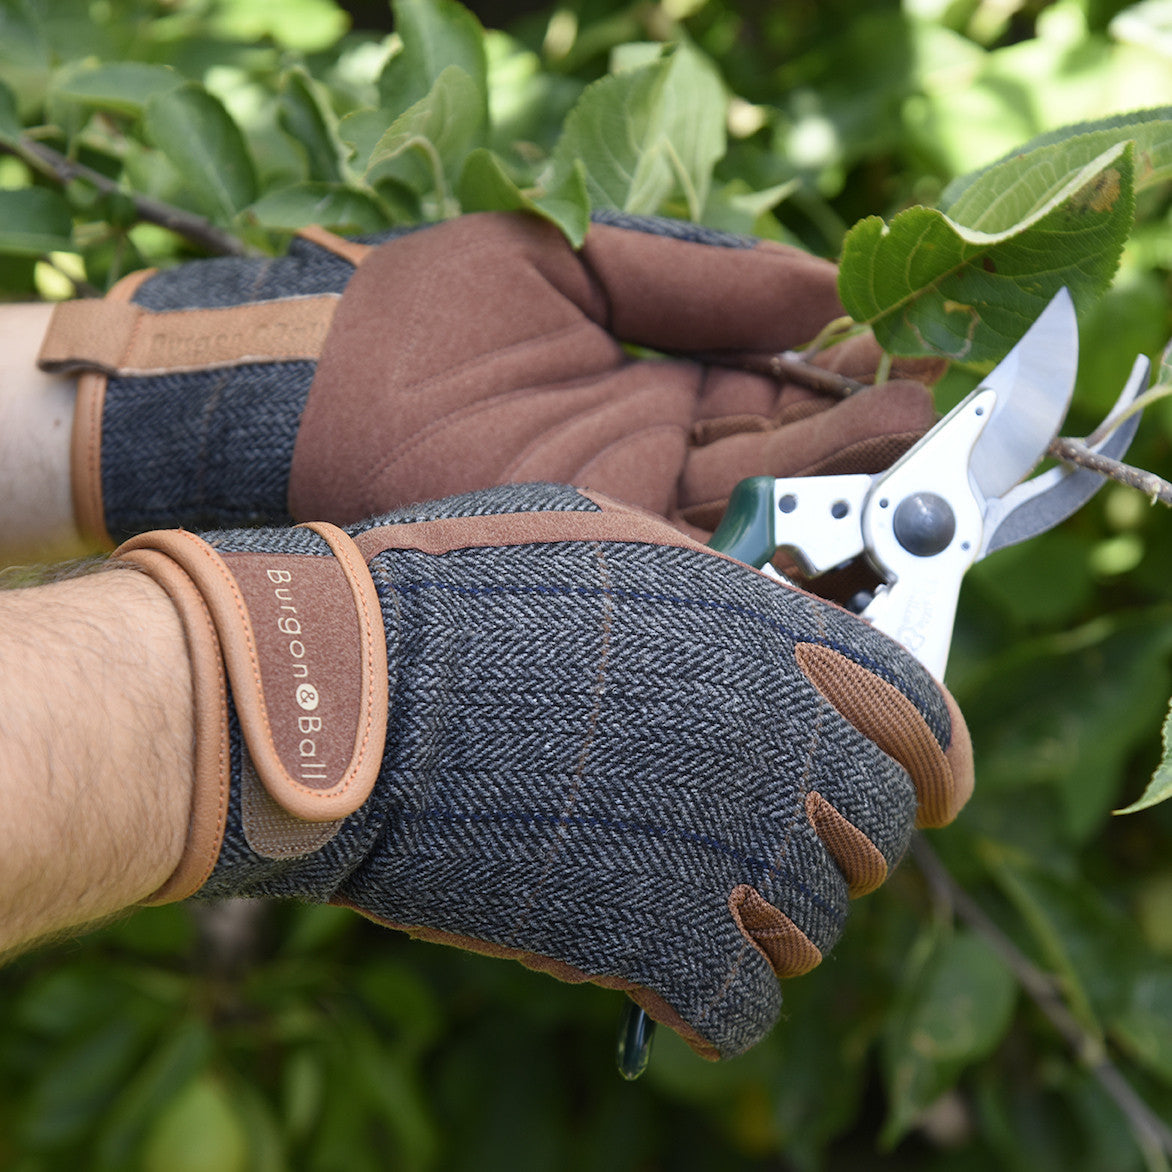 Men's Gardening Gloves - Tweed - The Potting Shed Garden Tools